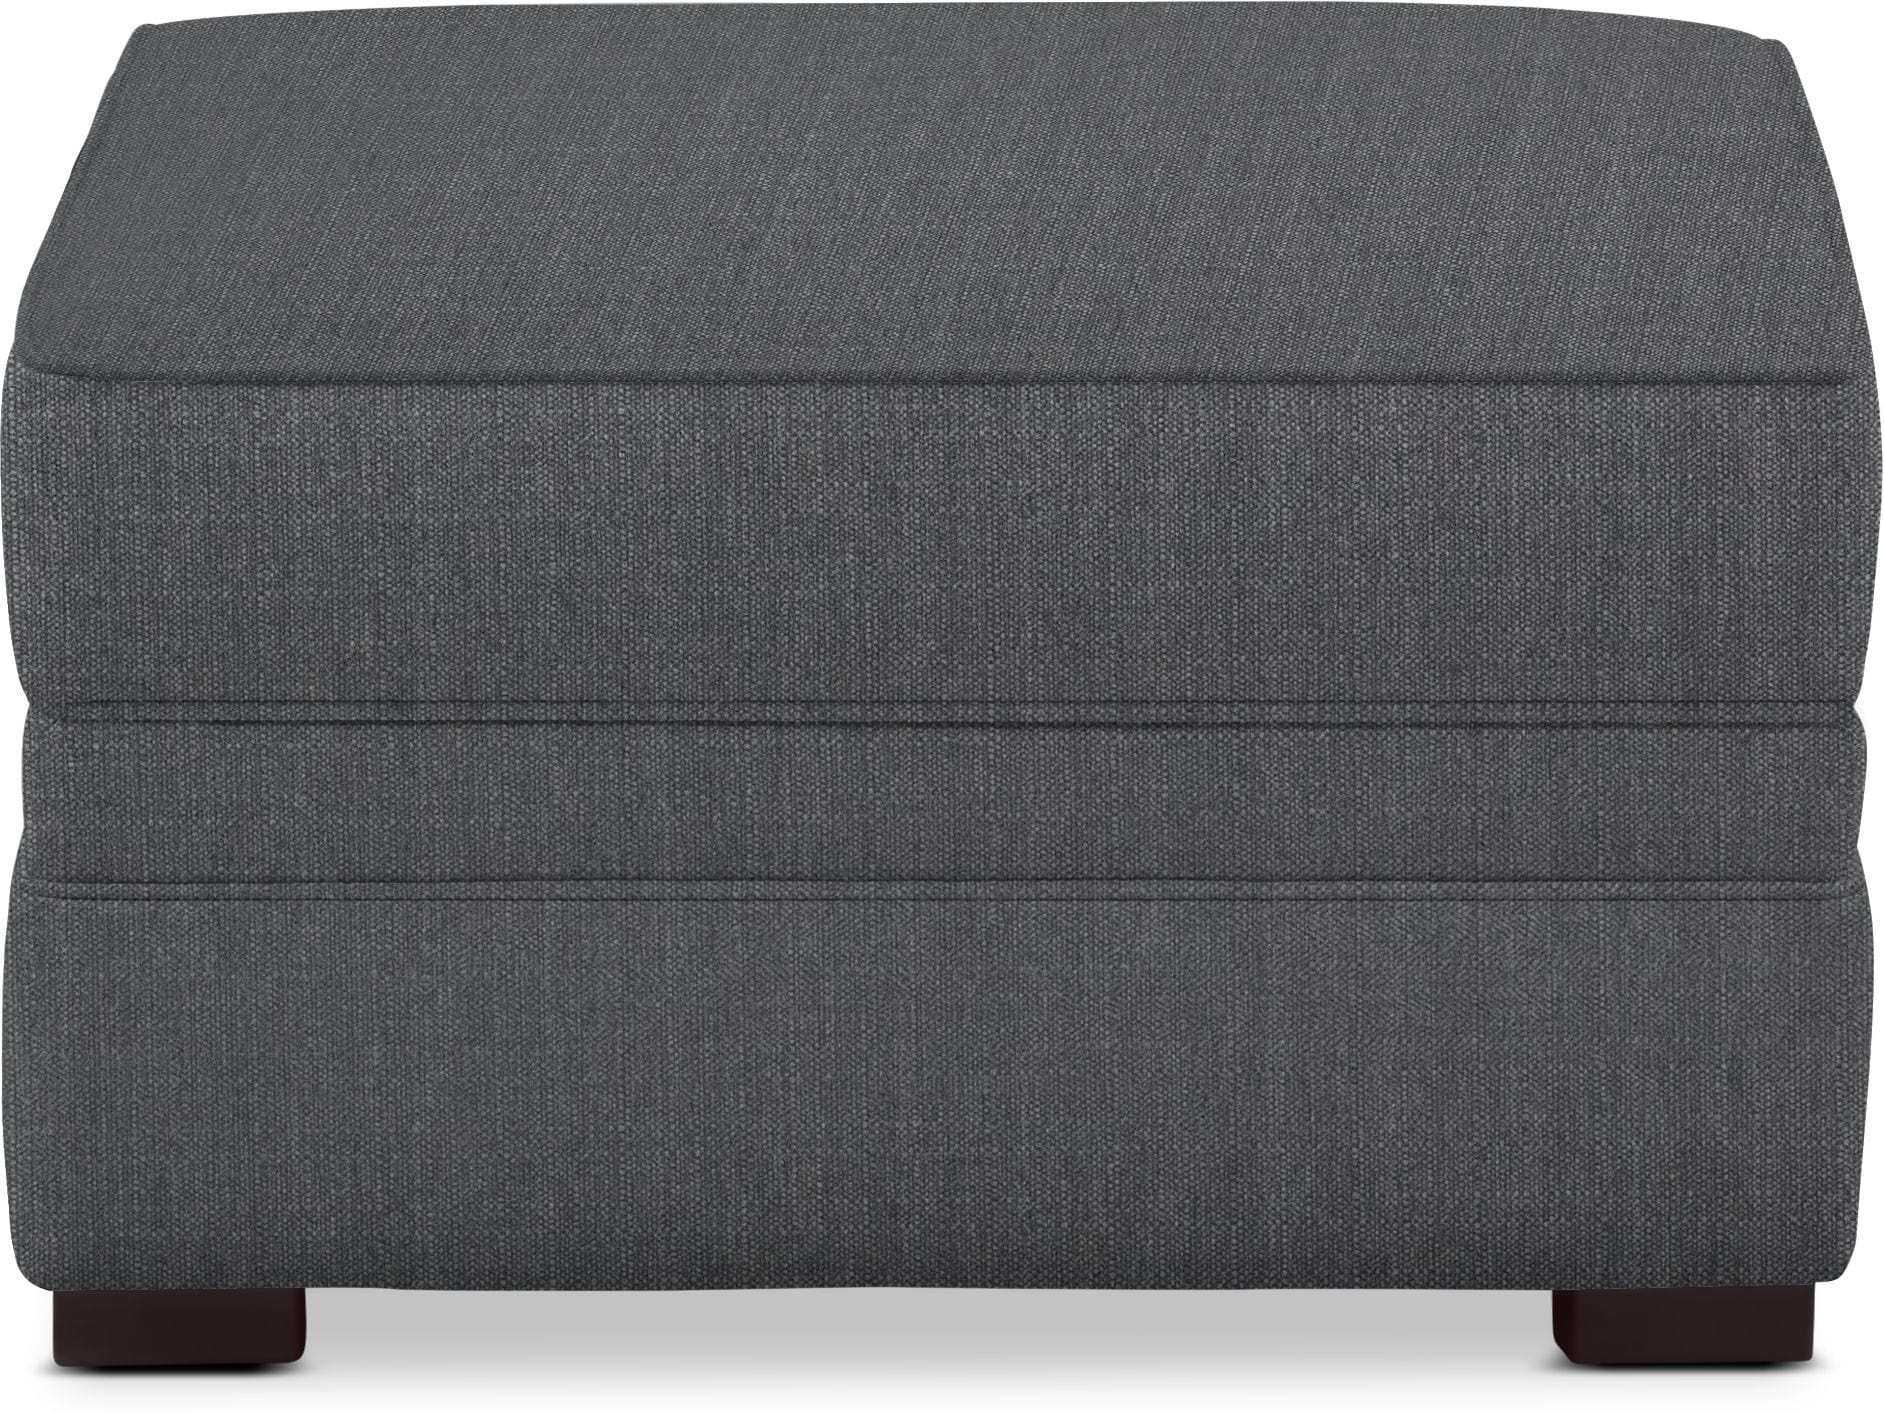 Living Room Furniture - Tallulah Ottoman